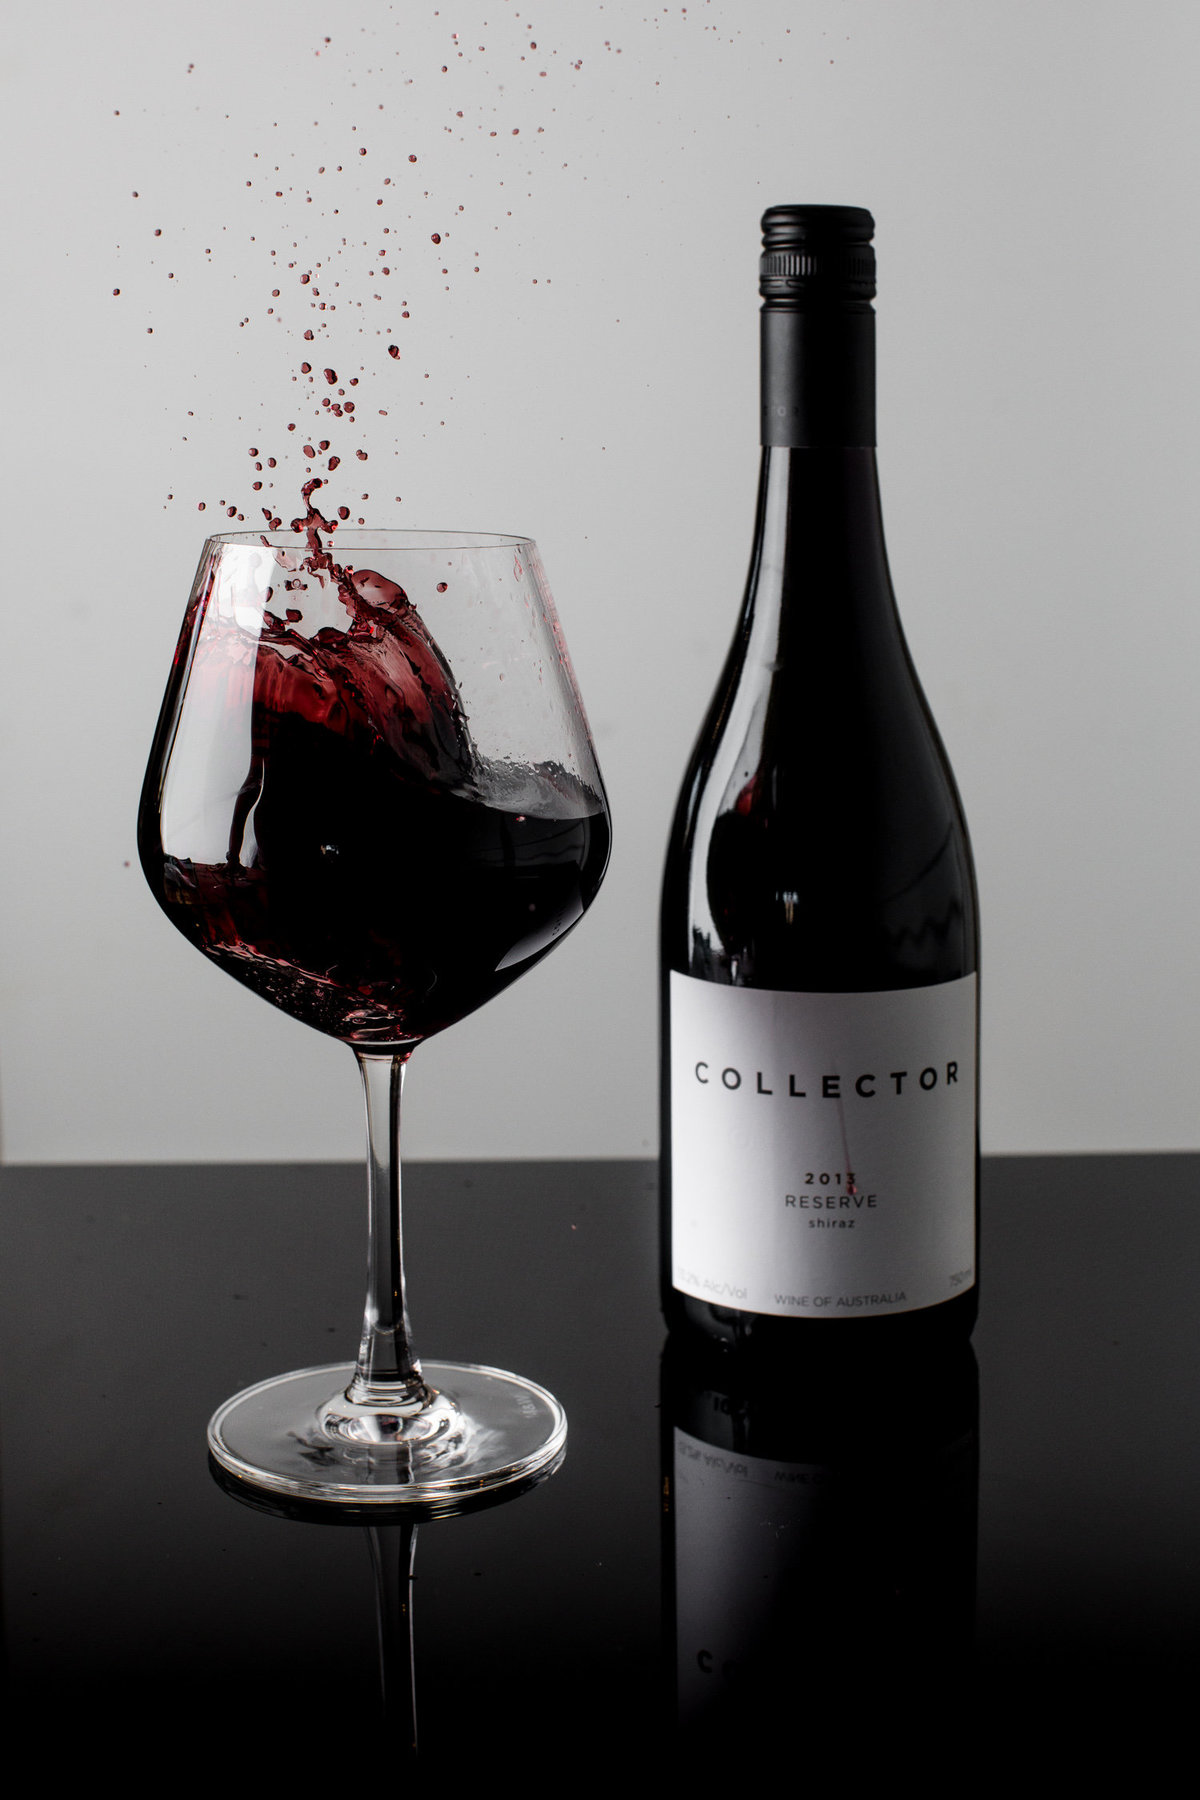 Collector - Product Wine Shots - Anisa Sabet - Photographer-129